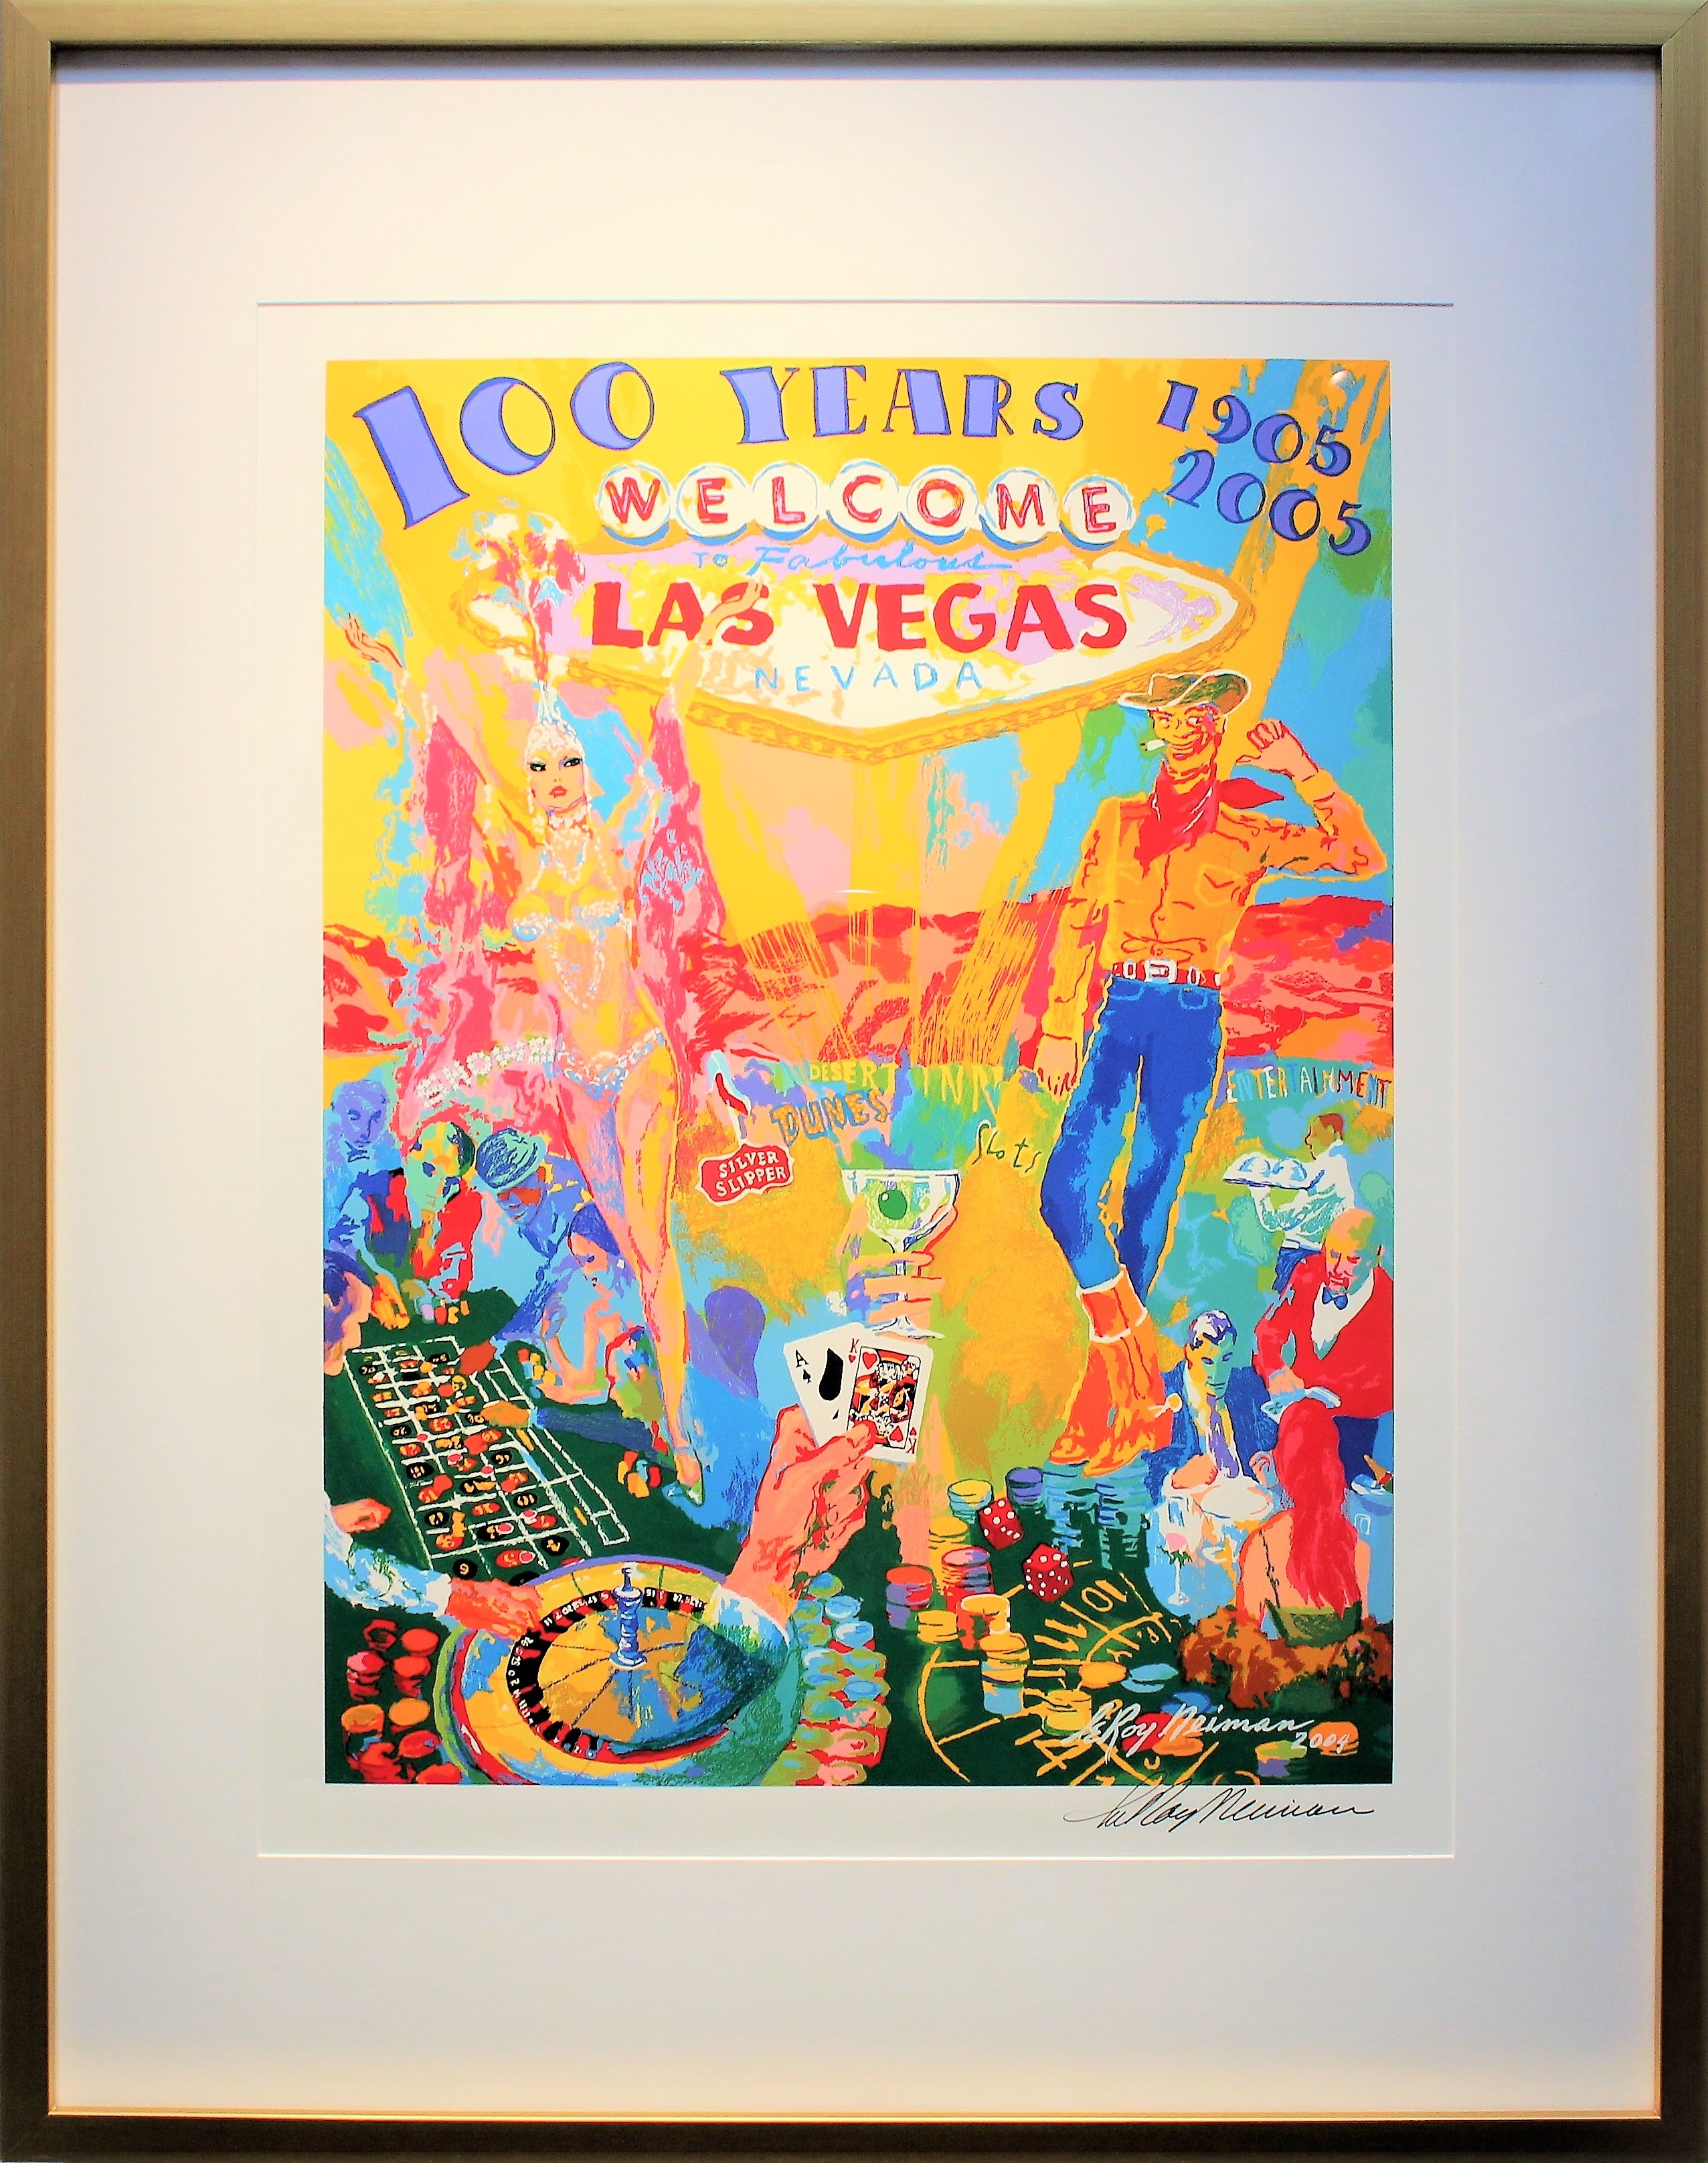 Centaur art gallery archives centaur art gallery move your mouse over imagethe screen print is a collage of typical scenes you will see in las vegas the show girl and the cowboy and you cant forget about gumiabroncs Images